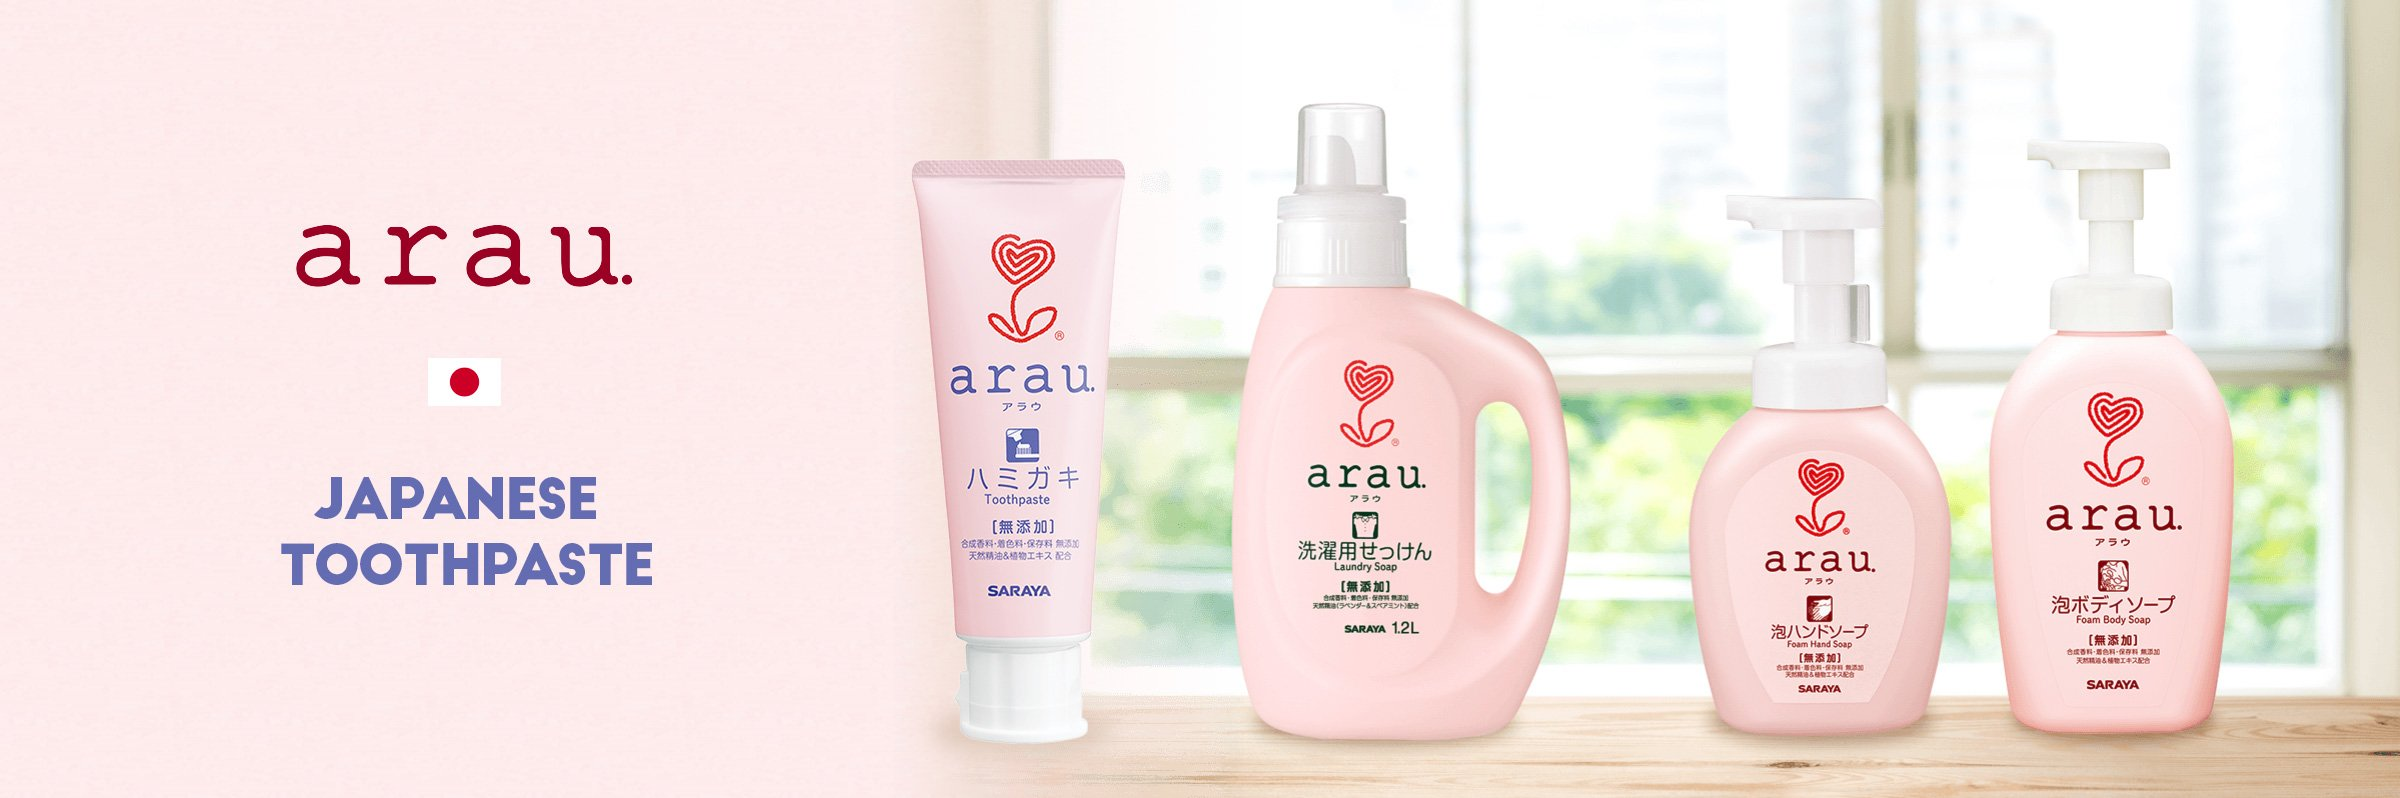 Arau Dental Japanese Toothpaste